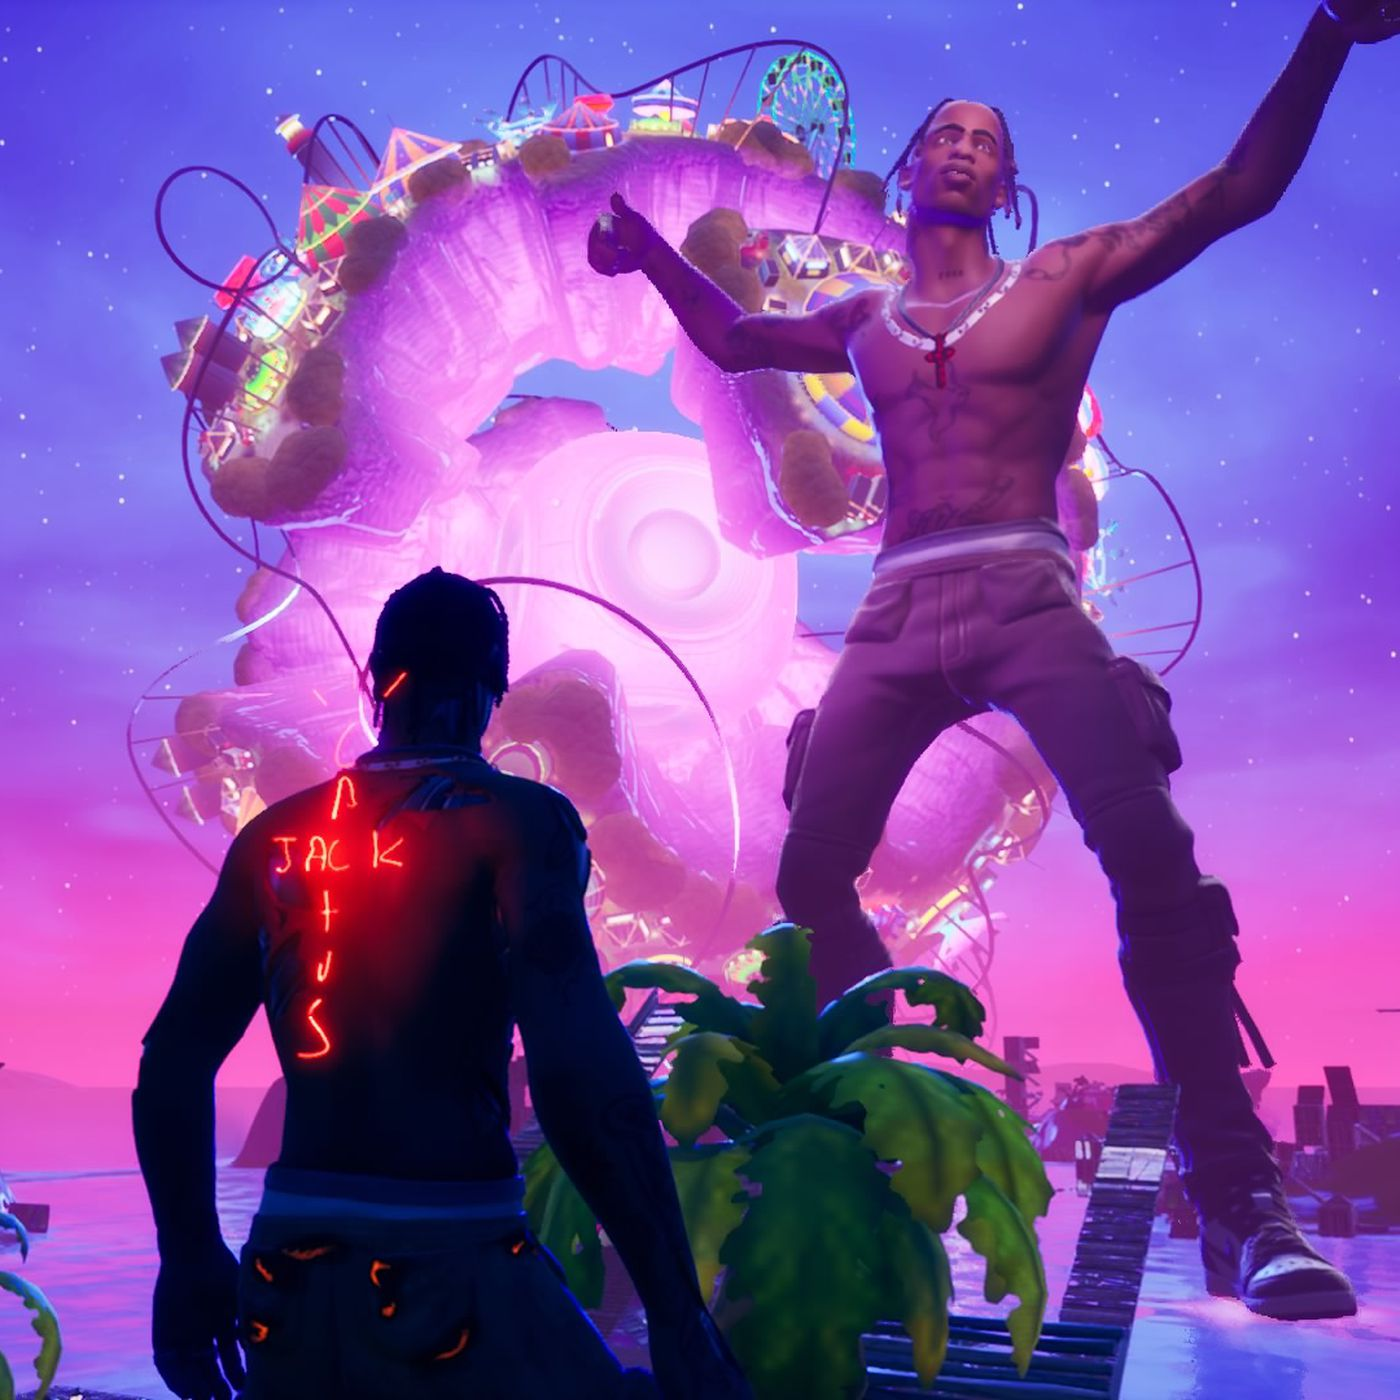 Travis Scott S First Fortnite Concert Was Surreal And Spectacular The Verge